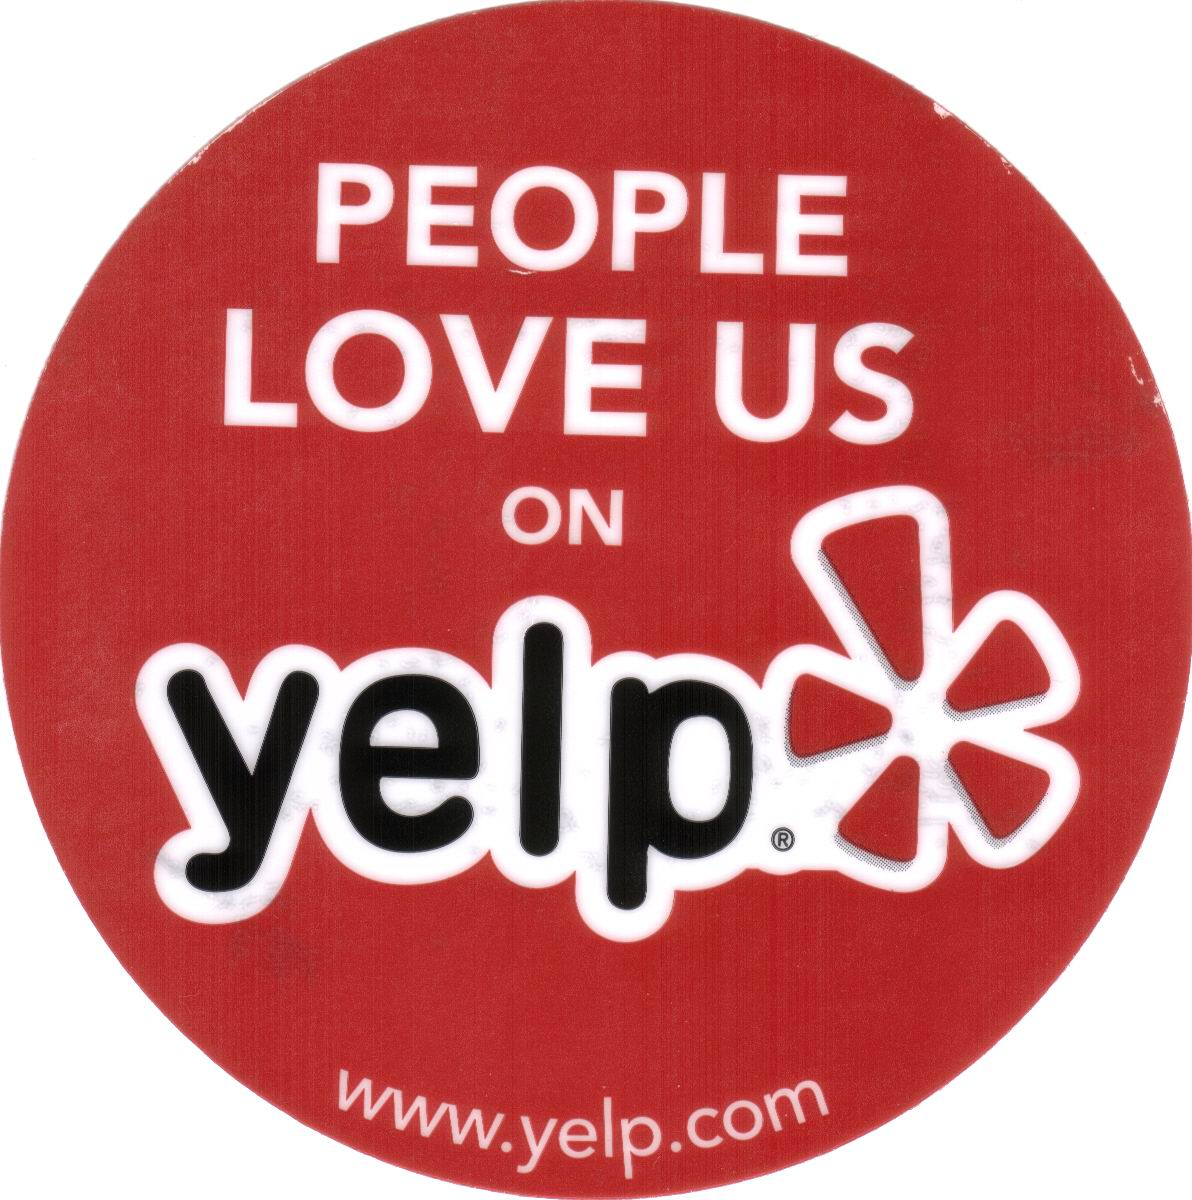 Take control of your online reputation by claiming your Yelp business listing. It's simple and FREE.